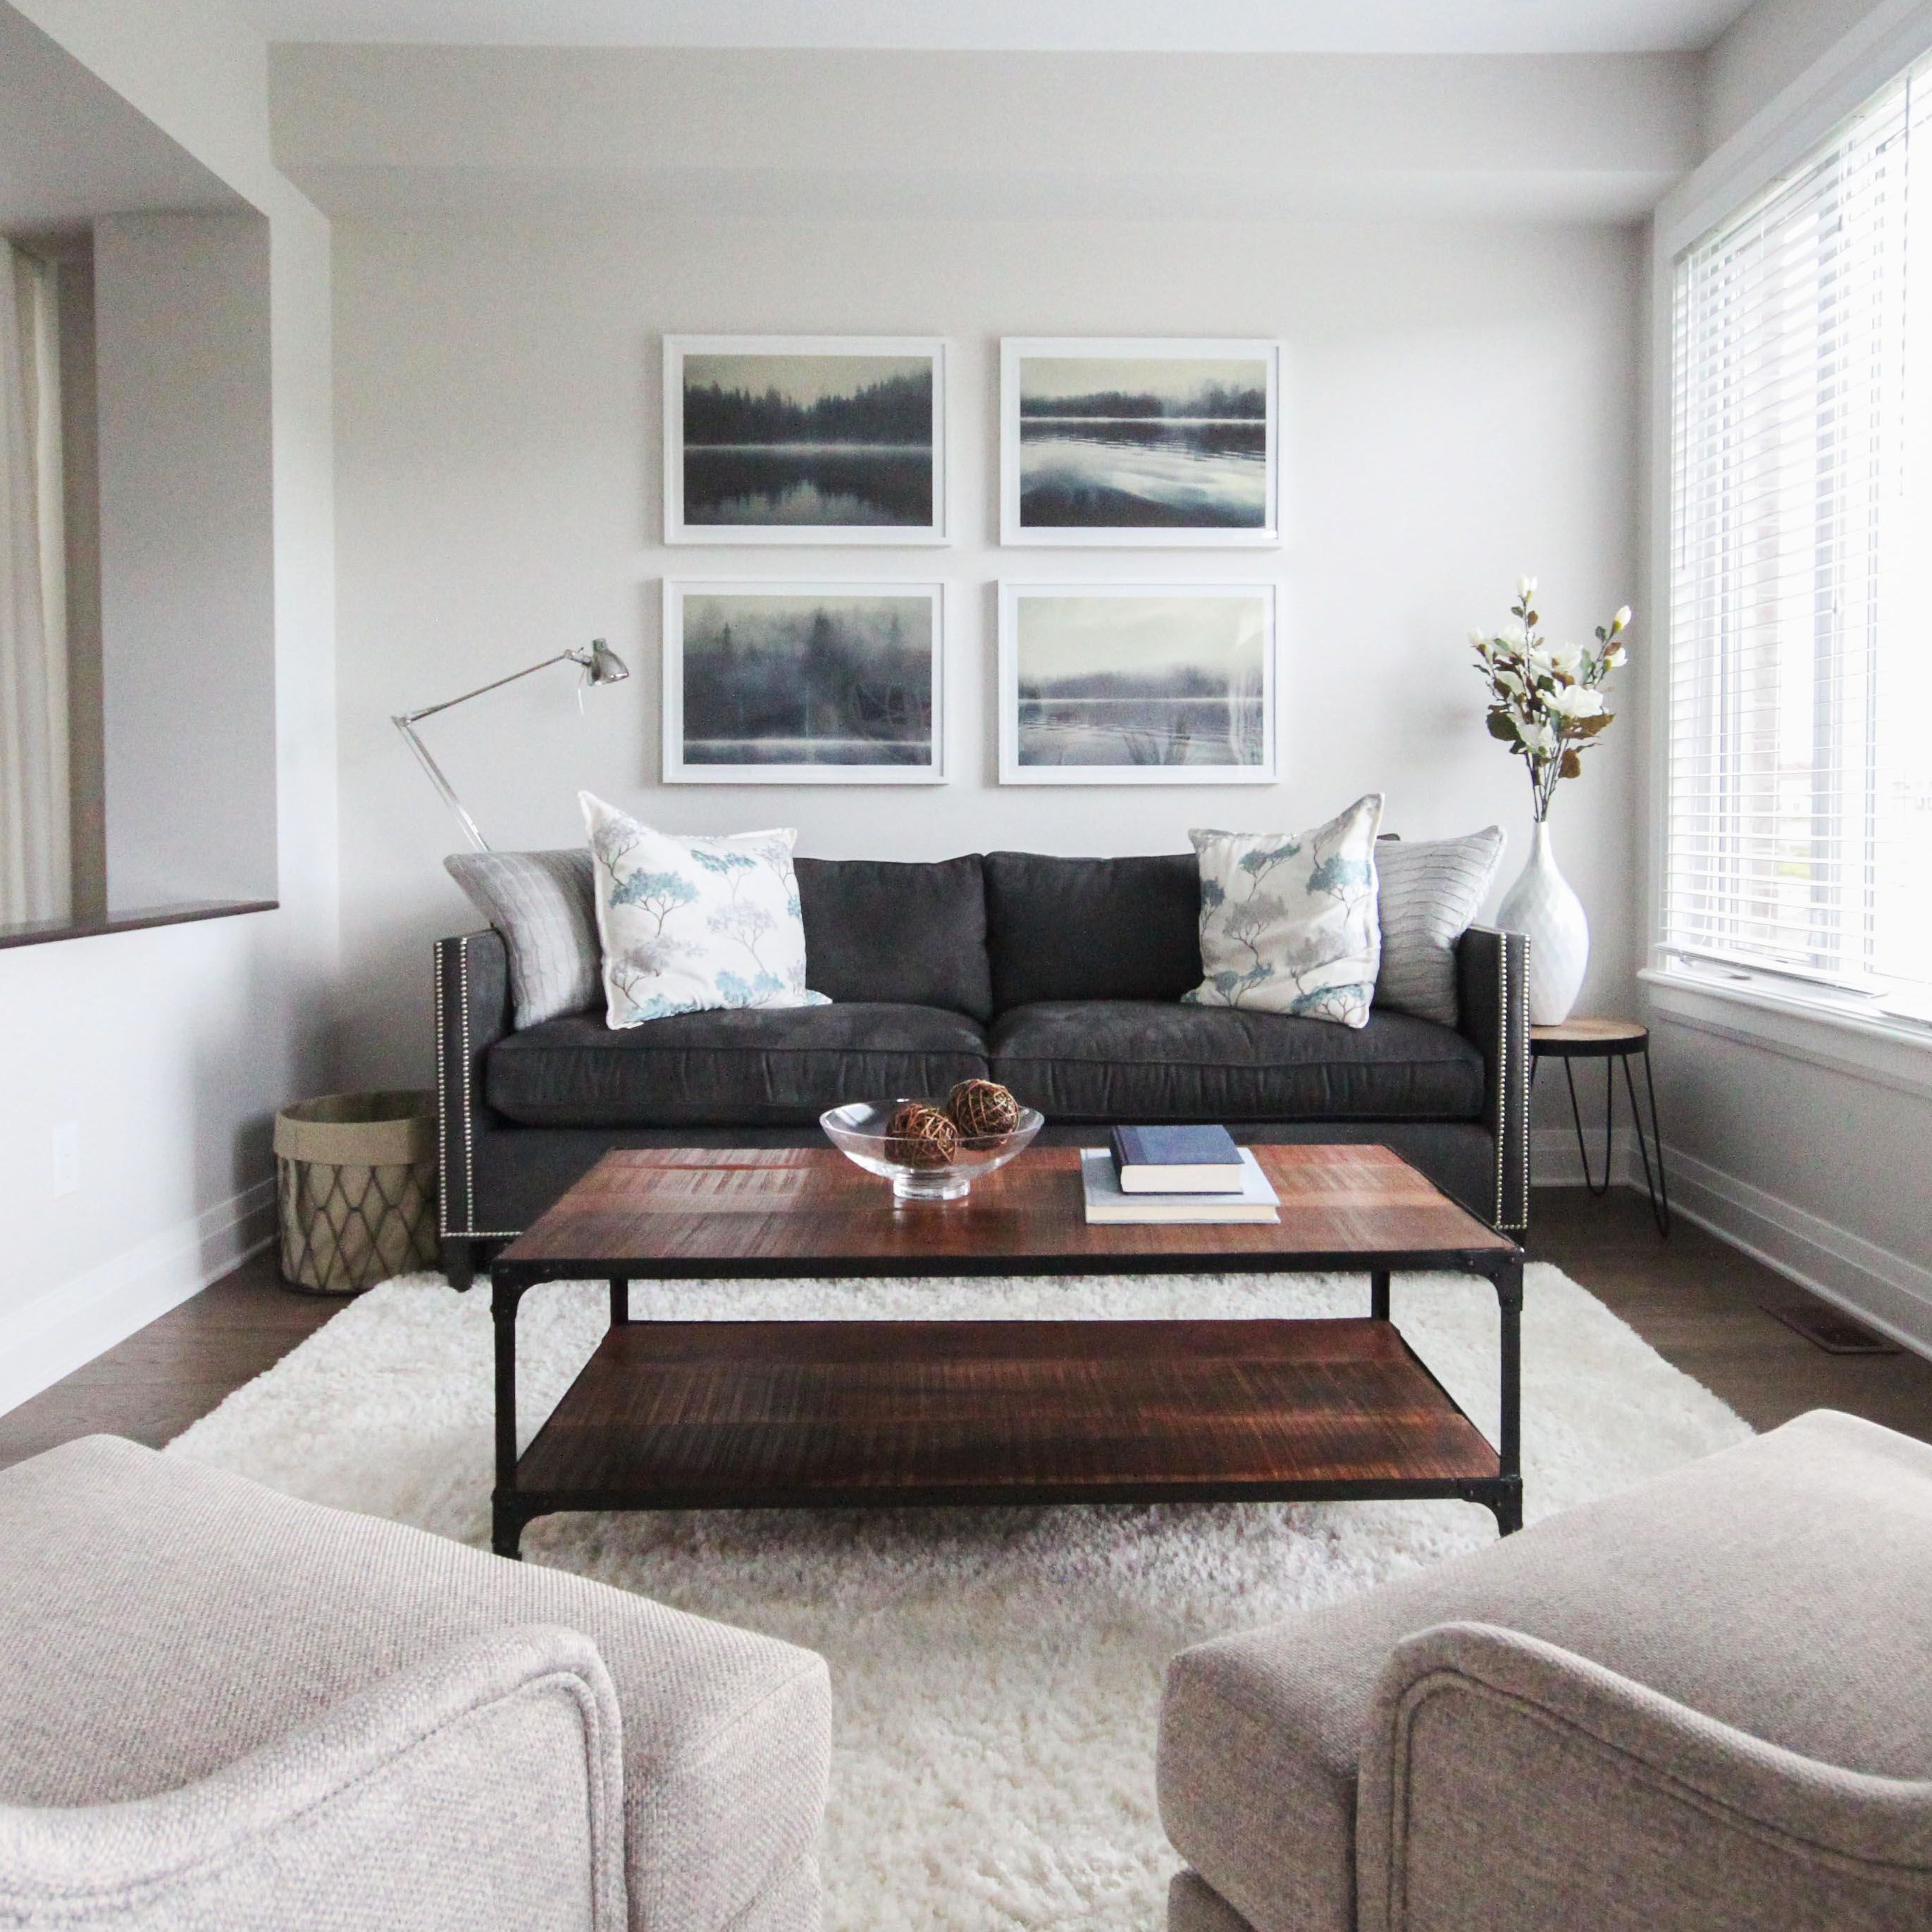 New Home Living Room Designs: Living Room Area In The Richcraft Fairhaven We Decorated